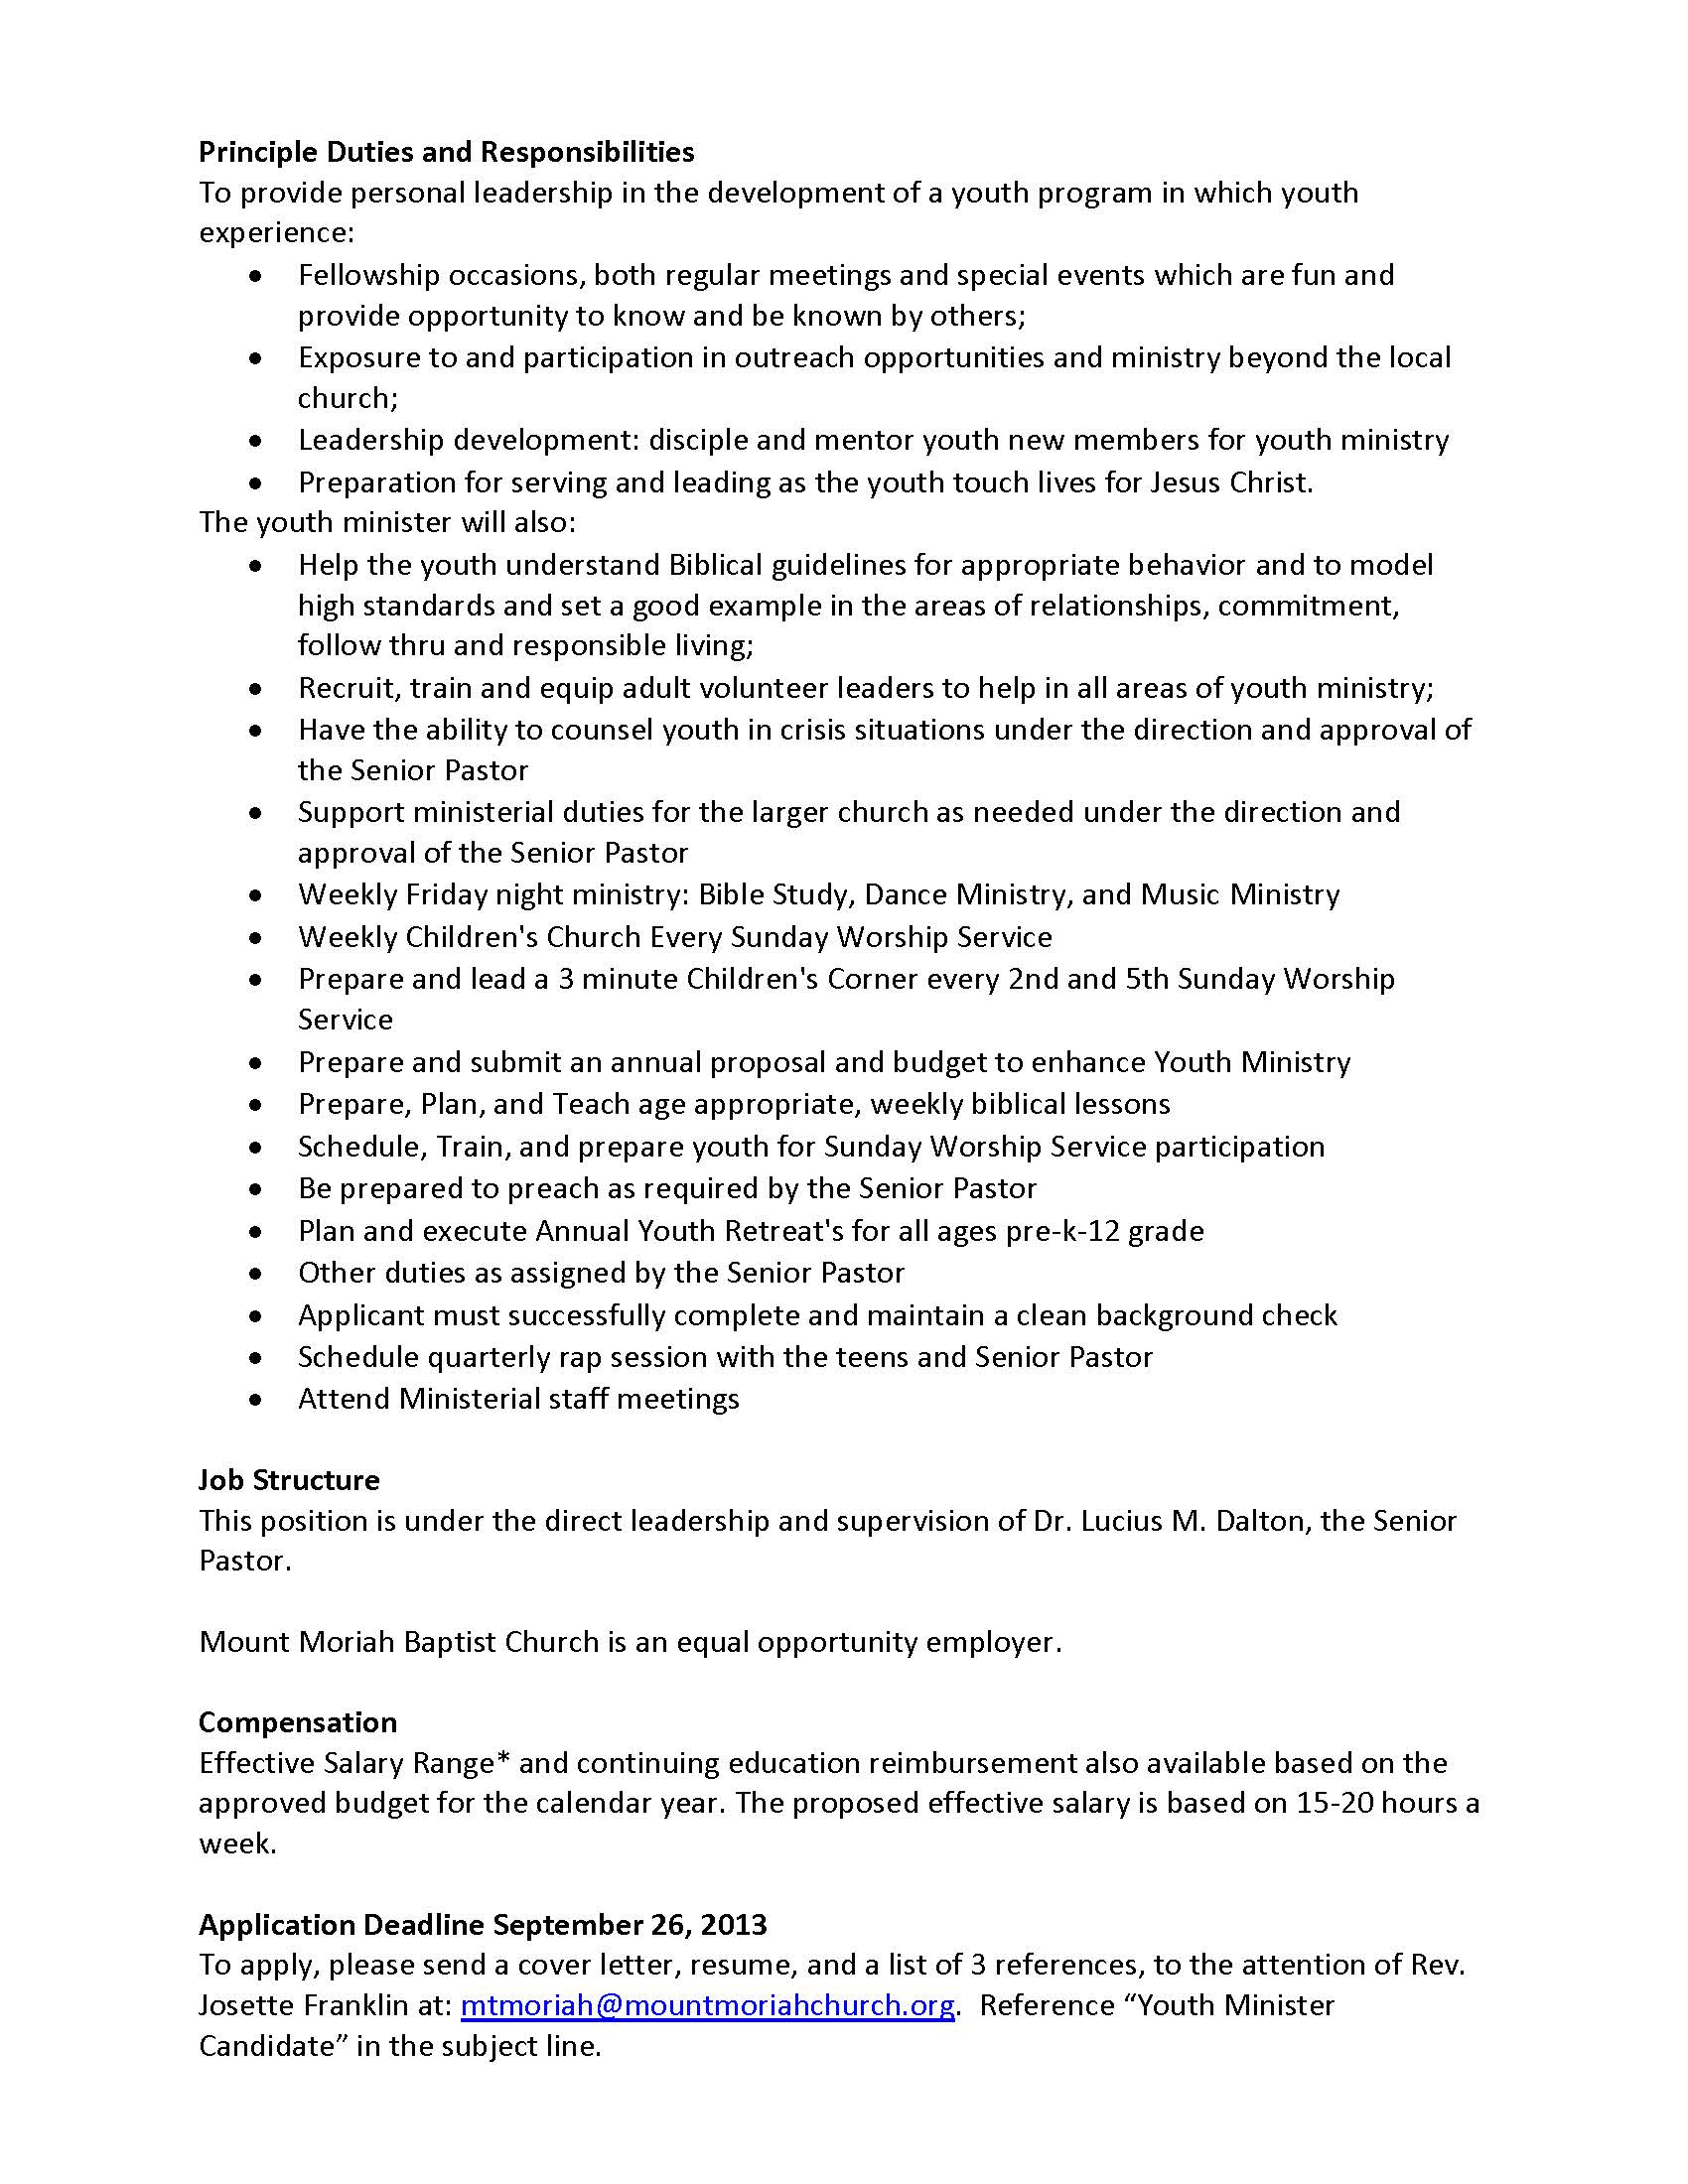 Sample Cover Letter For Leadership Position Image collections ...